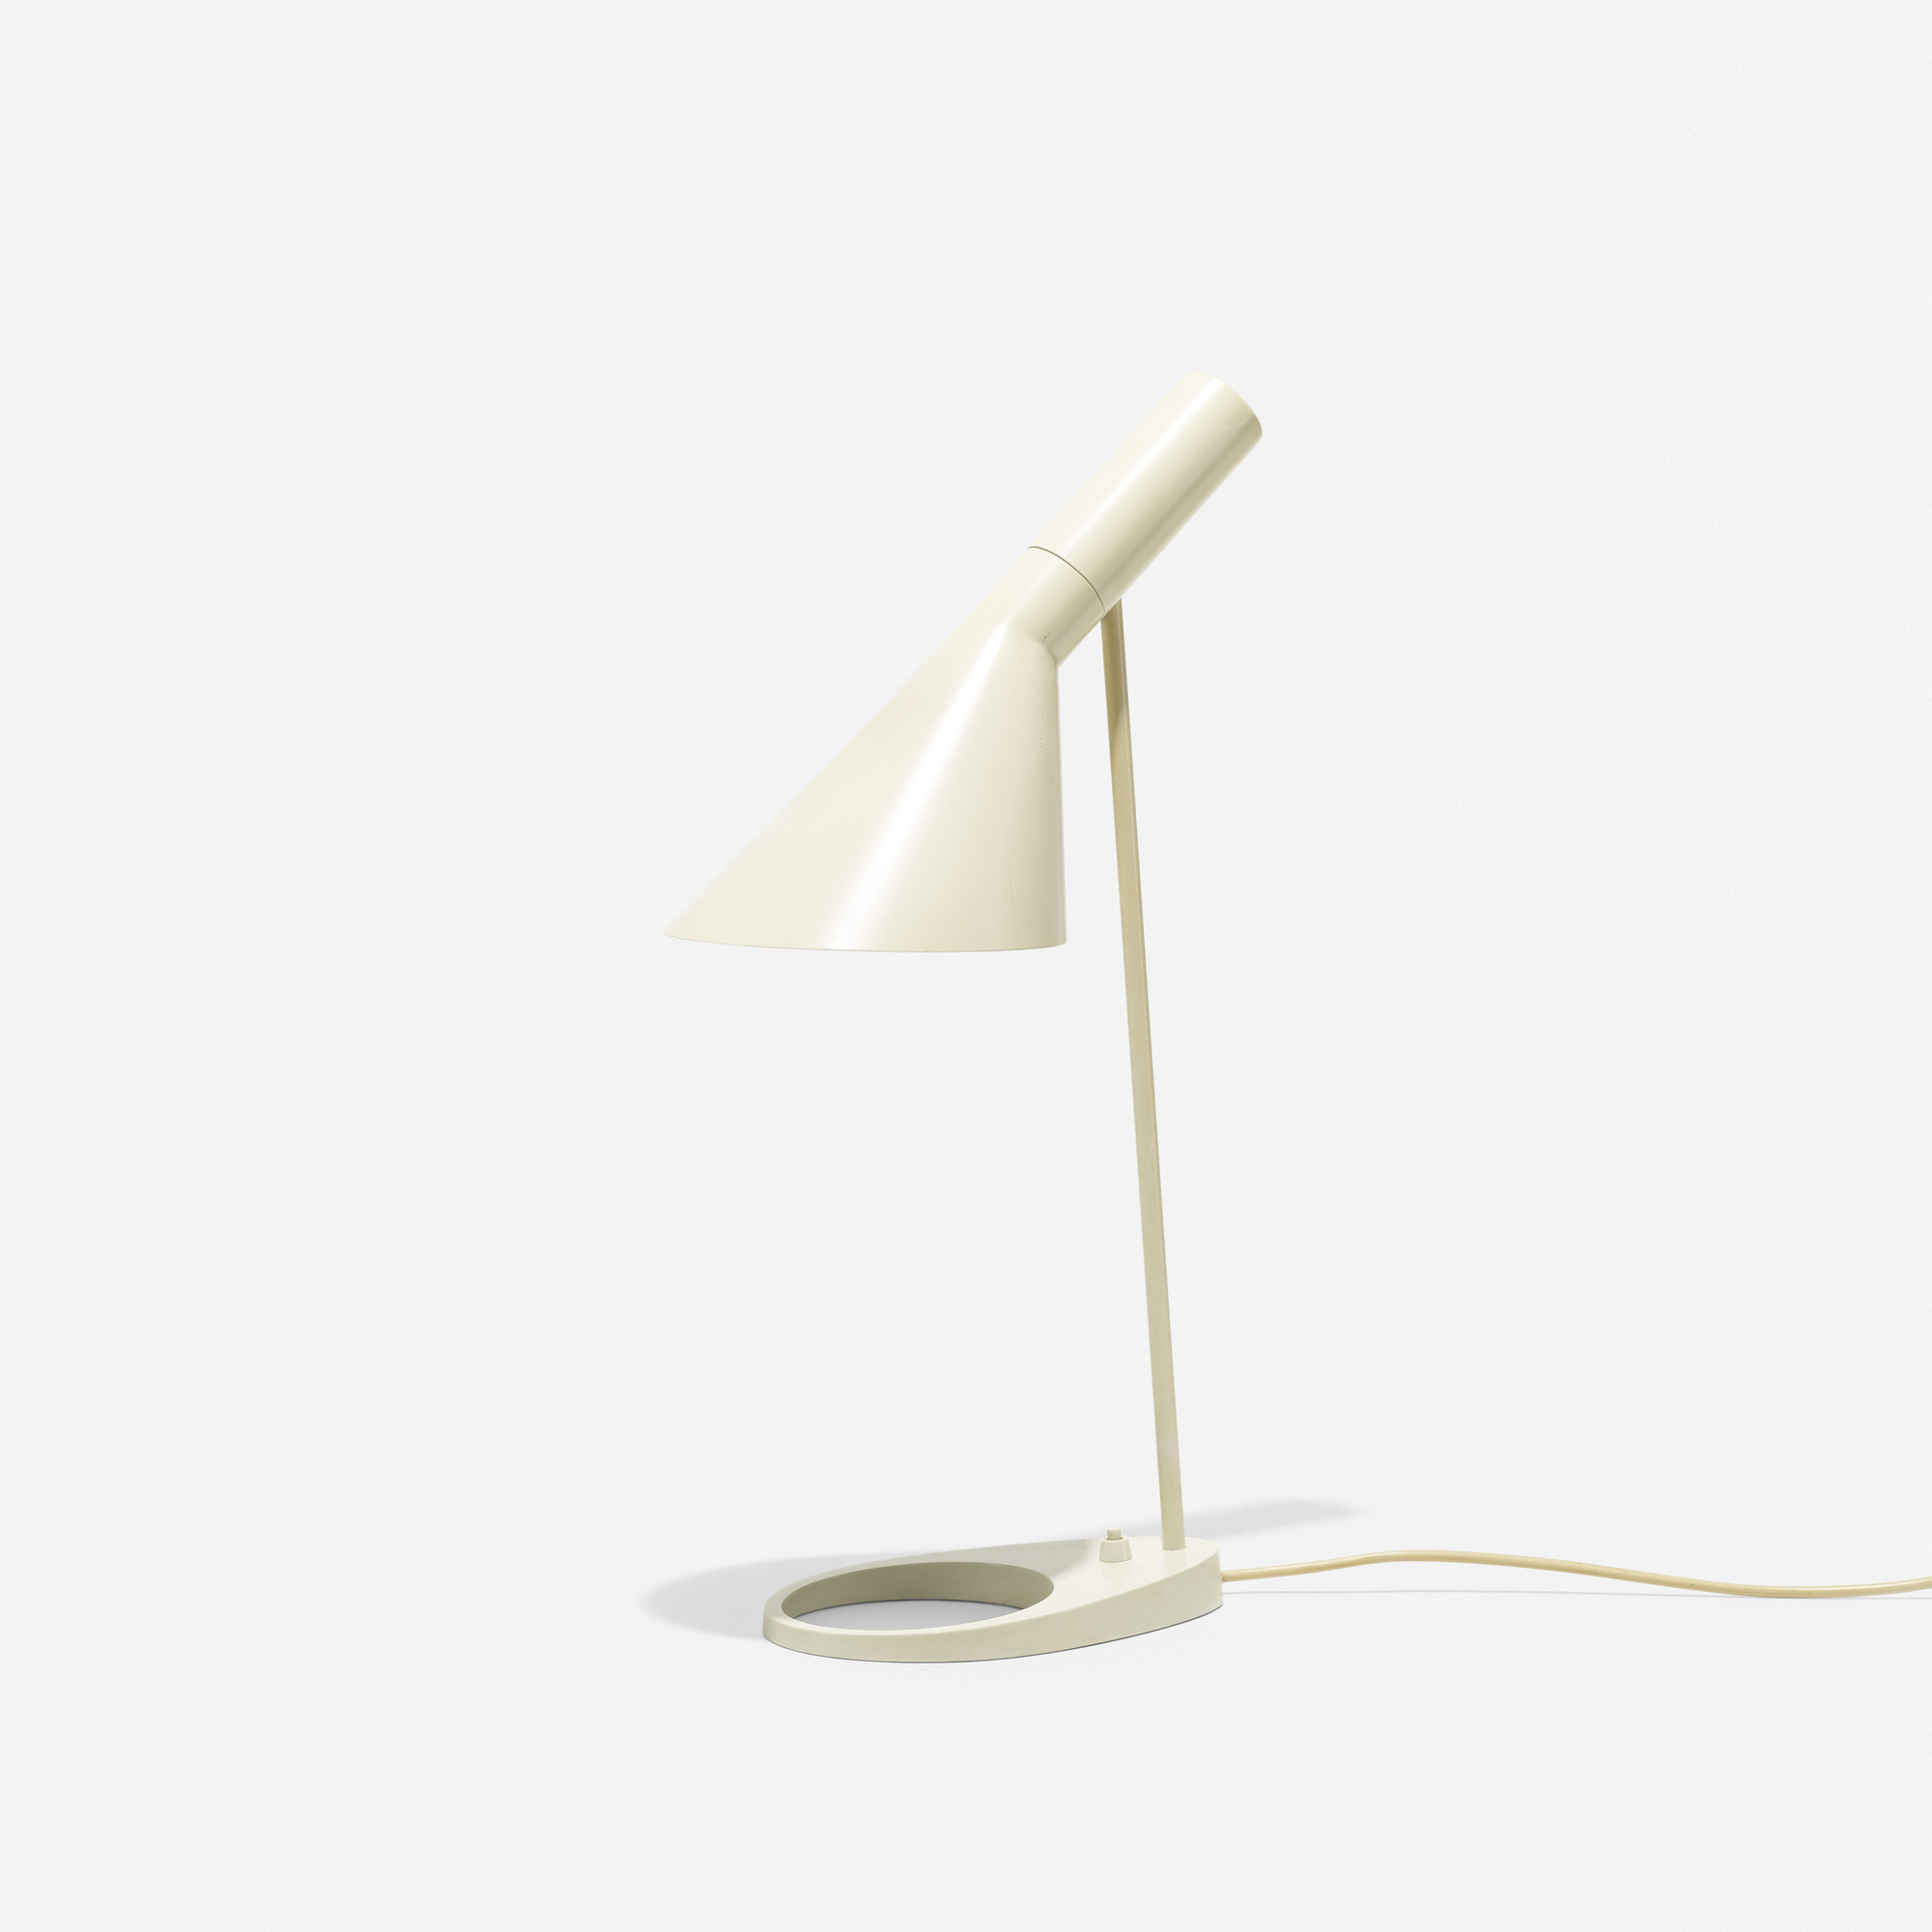 267: Arne Jacobsen / Visor table lamp (1 of 2)